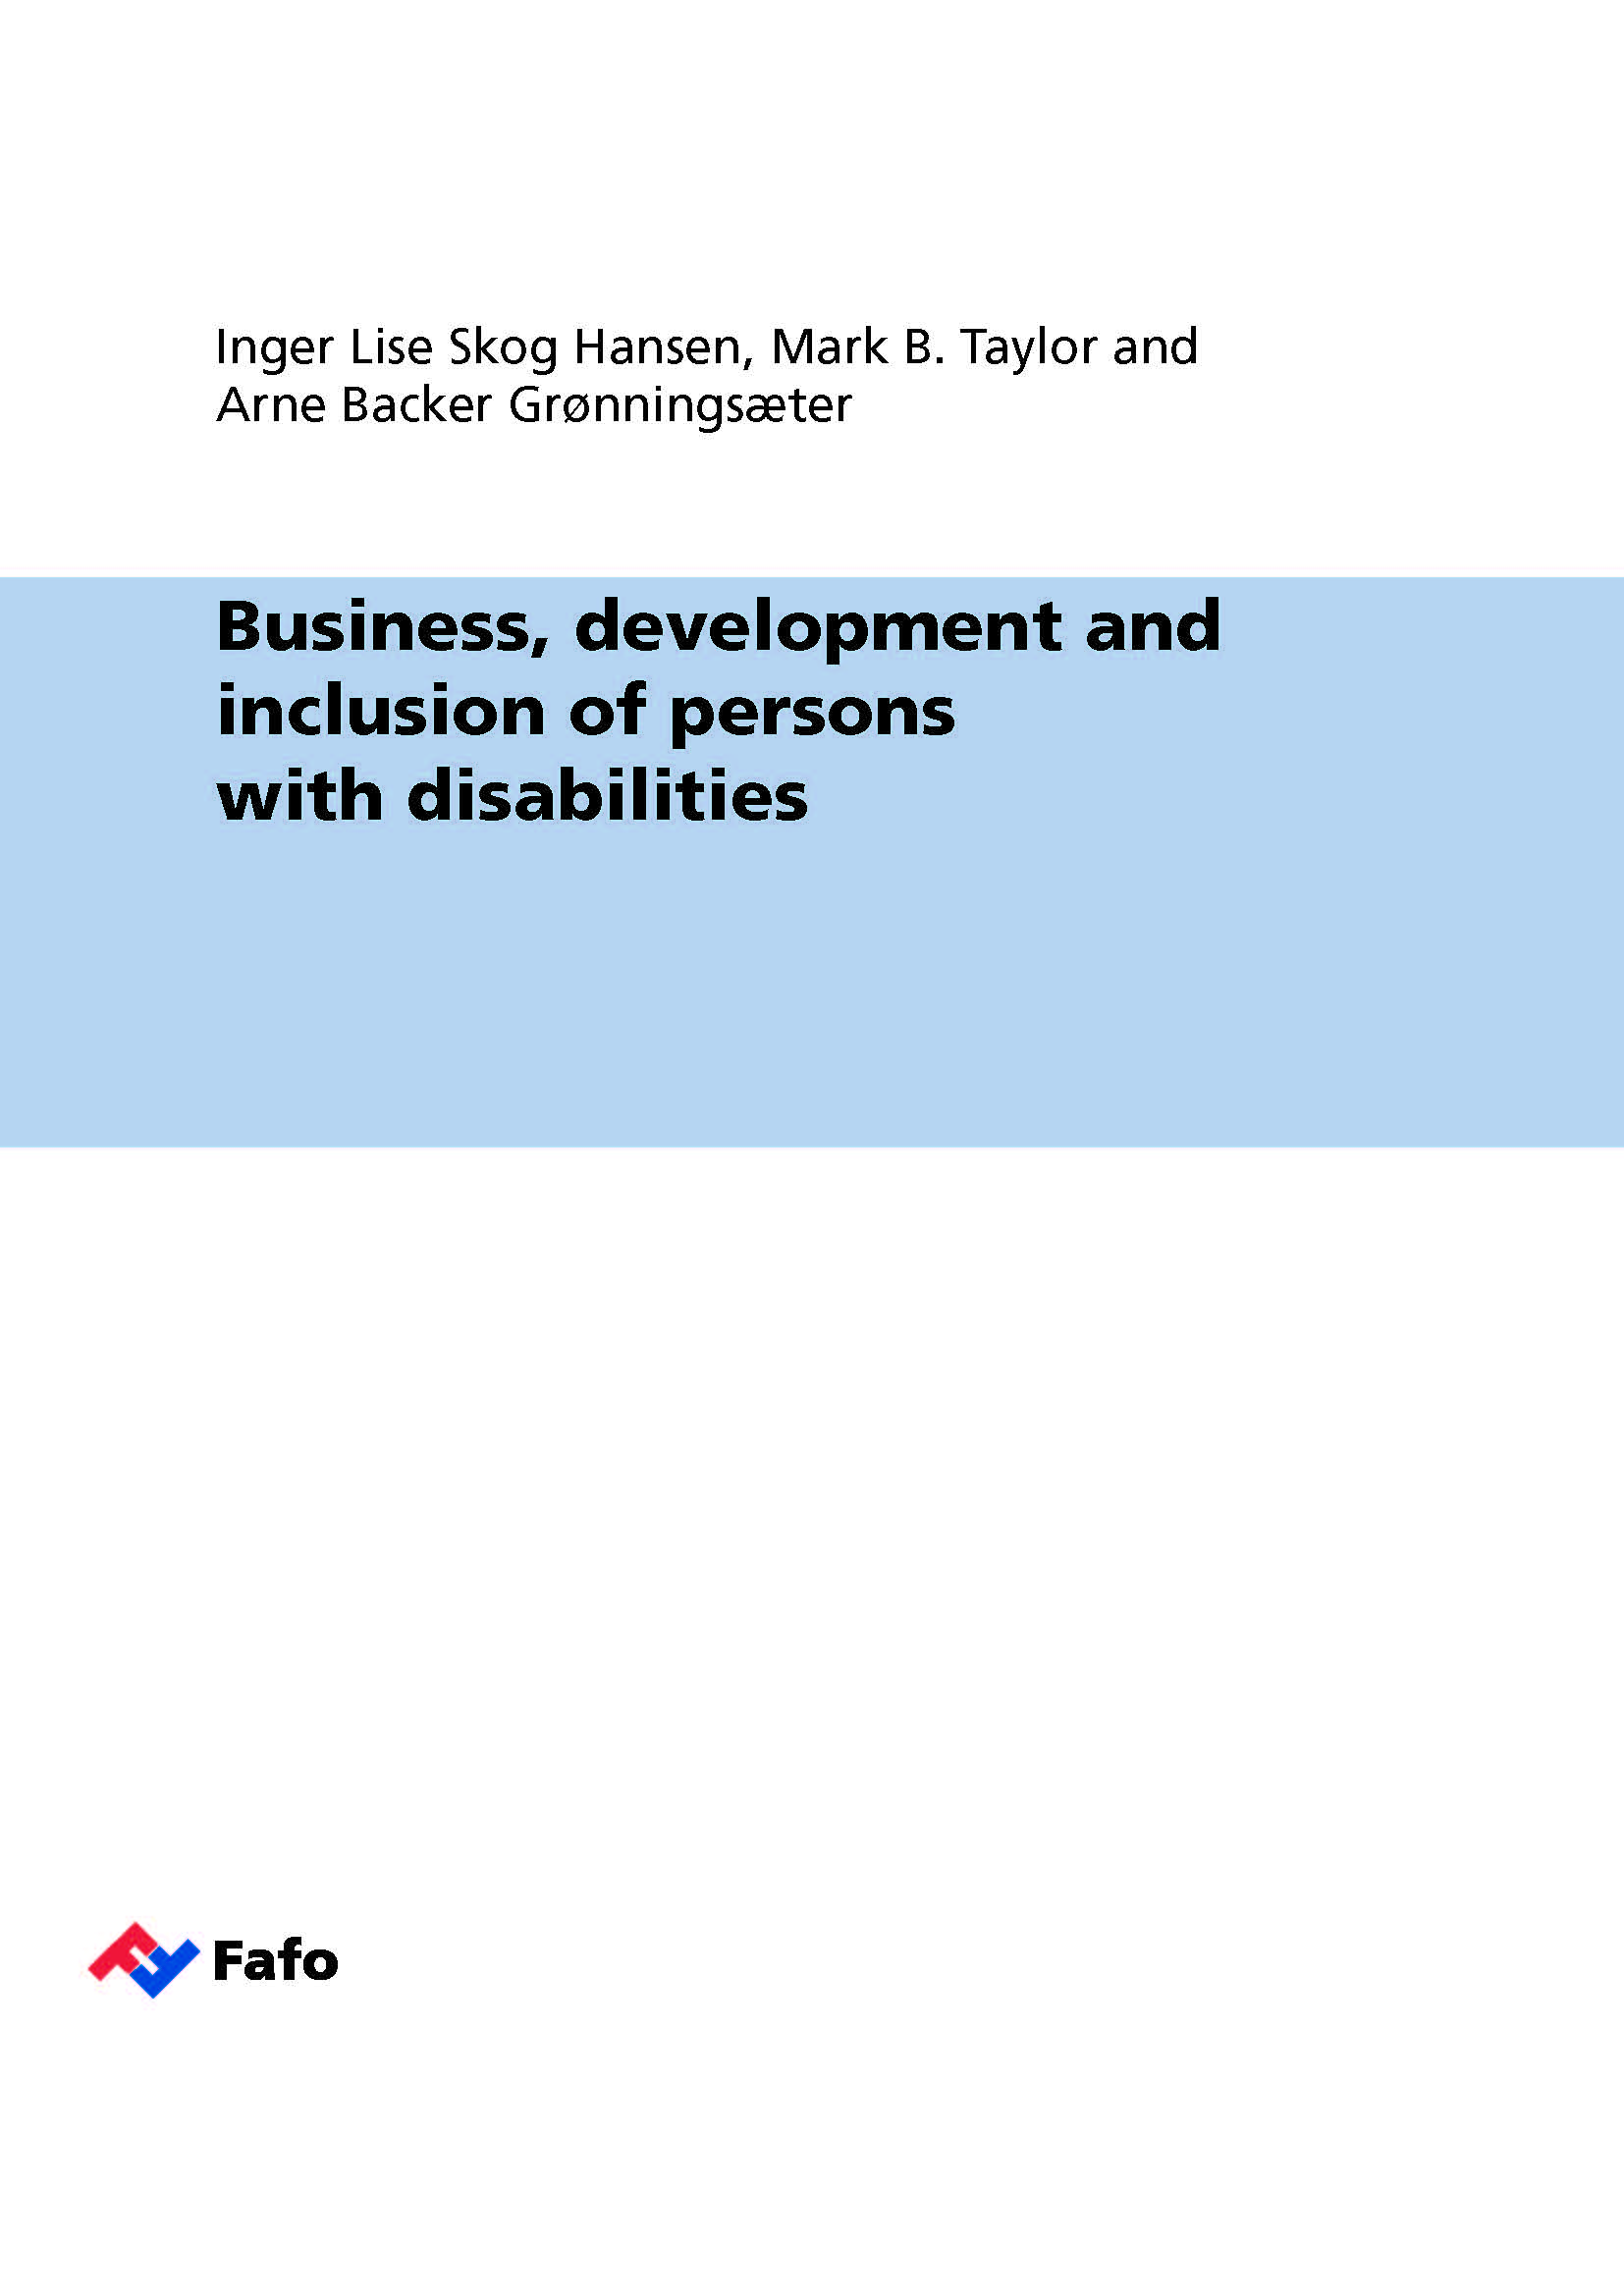 Business develpoment and inclusion of persons with diabilities